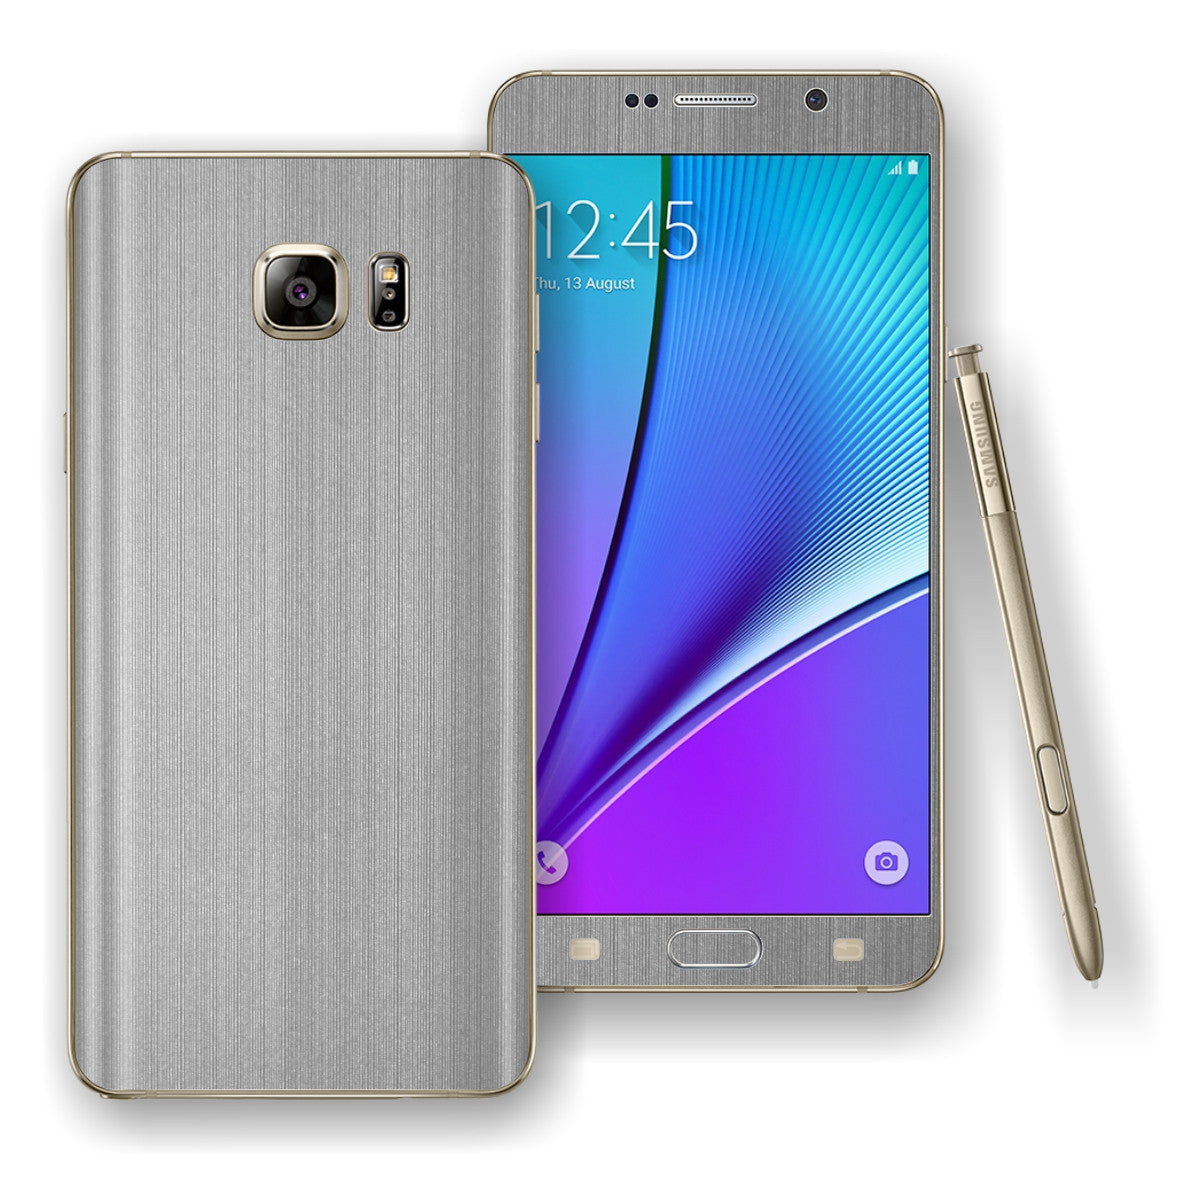 Samsung Galaxy NOTE 5 Premium Brushed Steel Skin Wrap Decal Cover Protector by EasySkinz